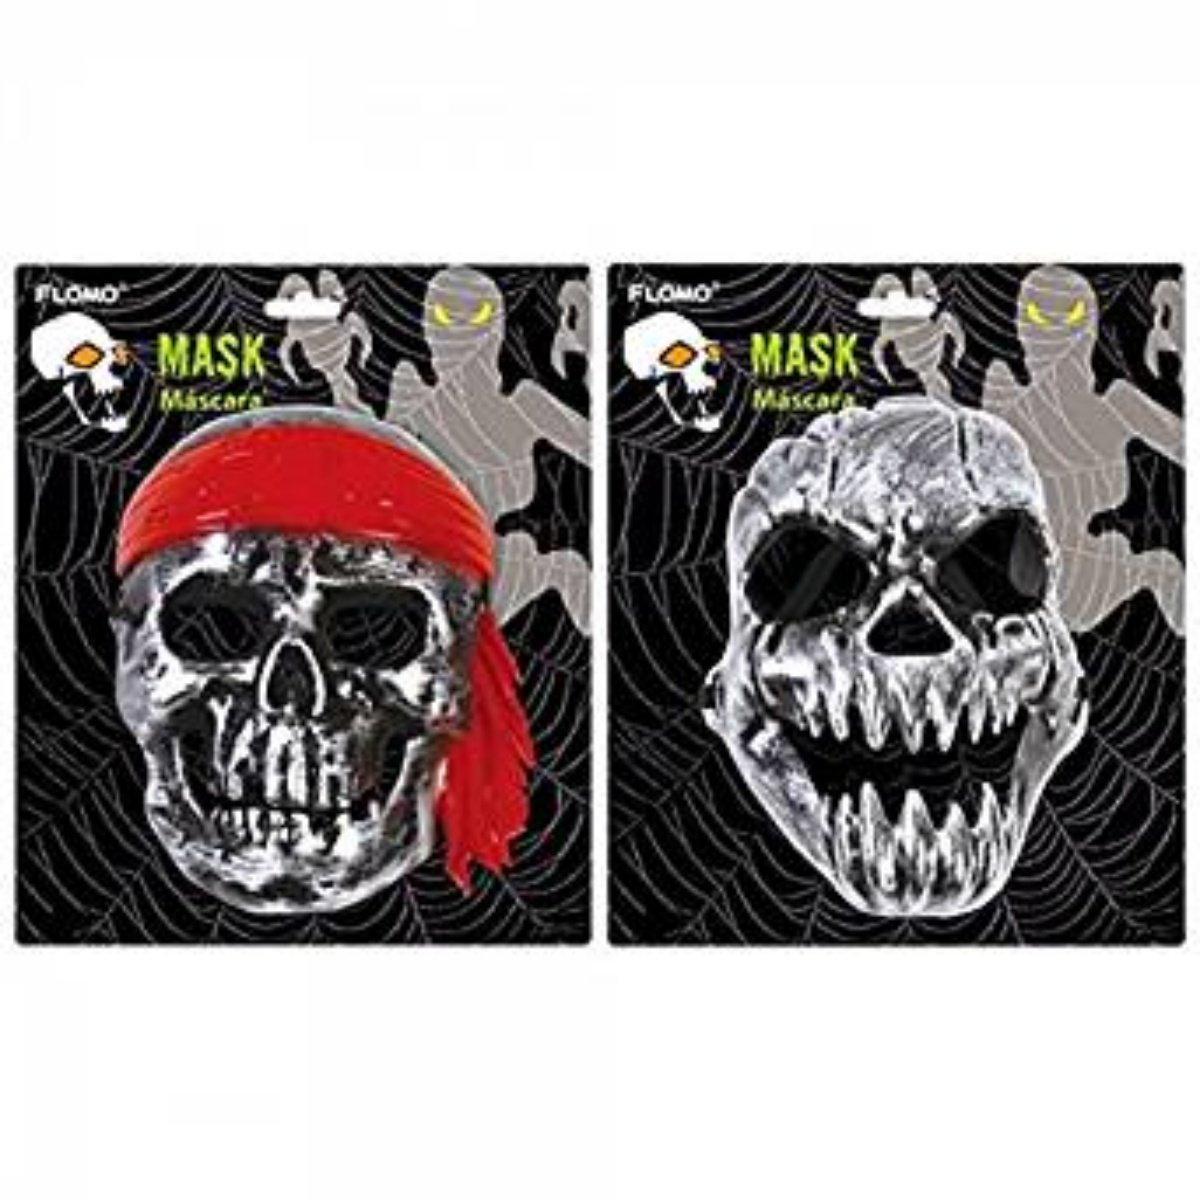 Scary Halloween Masks Set of 2 Pirate and Skull Plastic